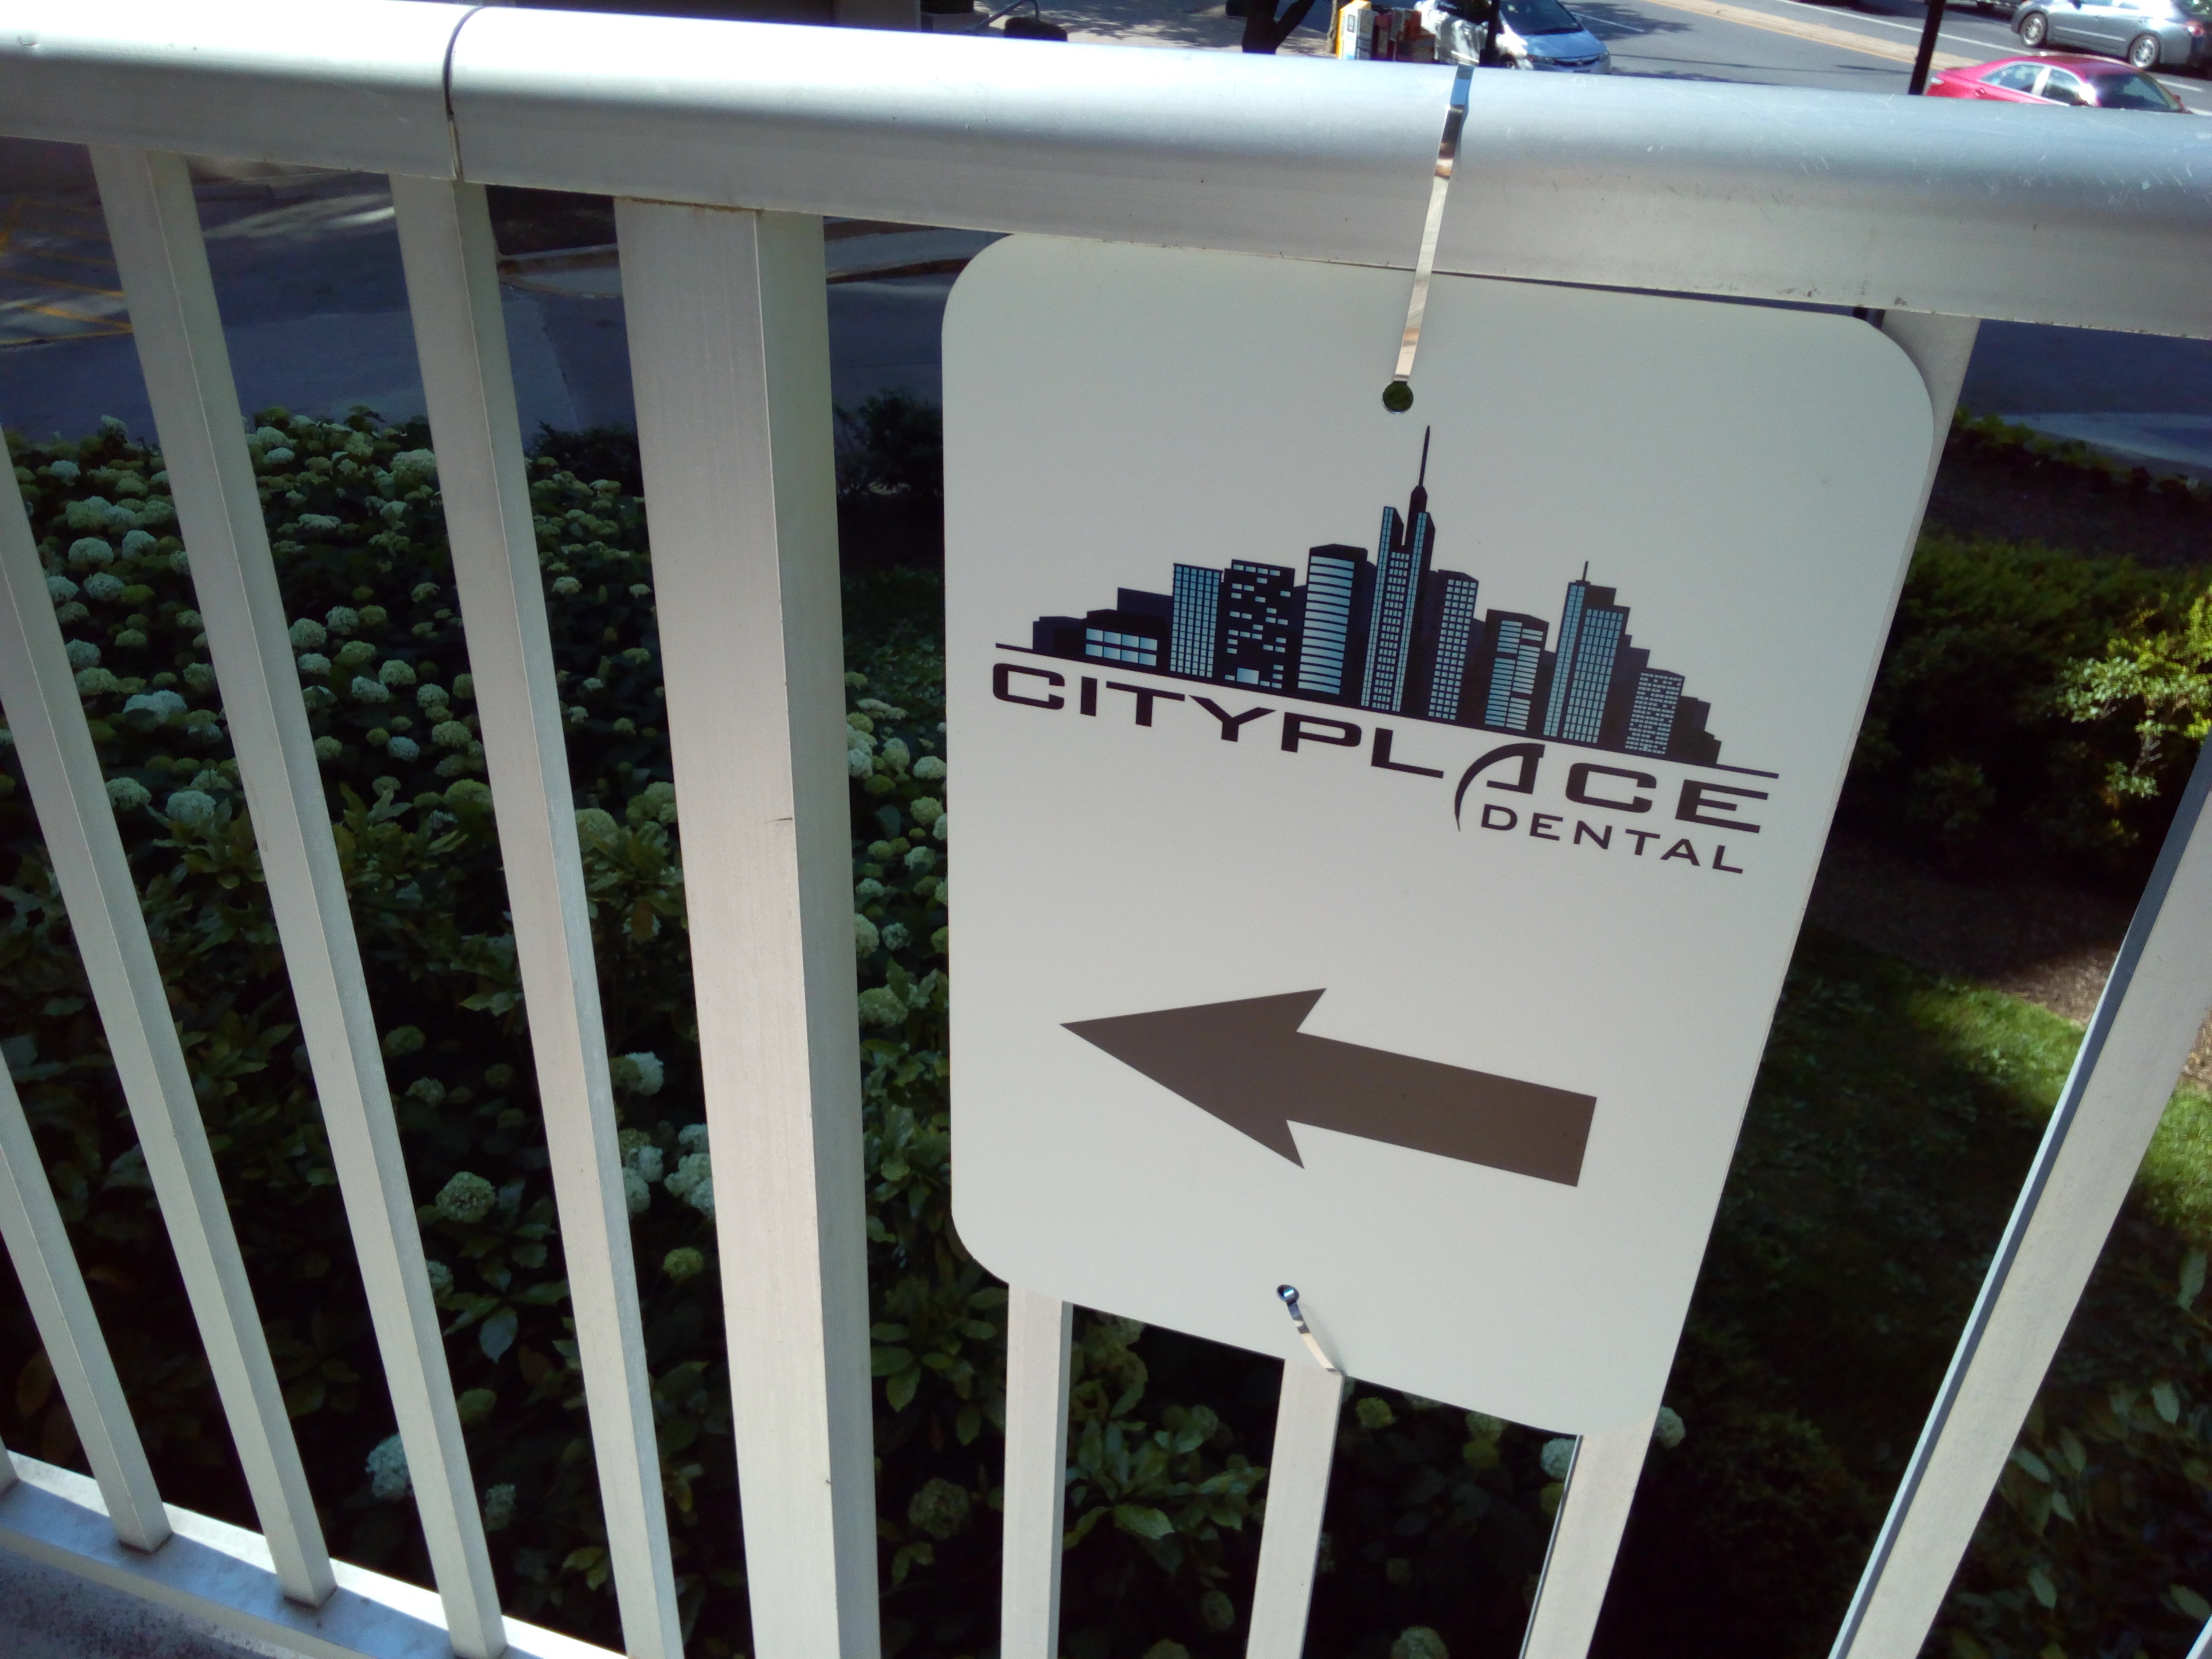 City Place Dental- Image of a sign for the dental office on a fence